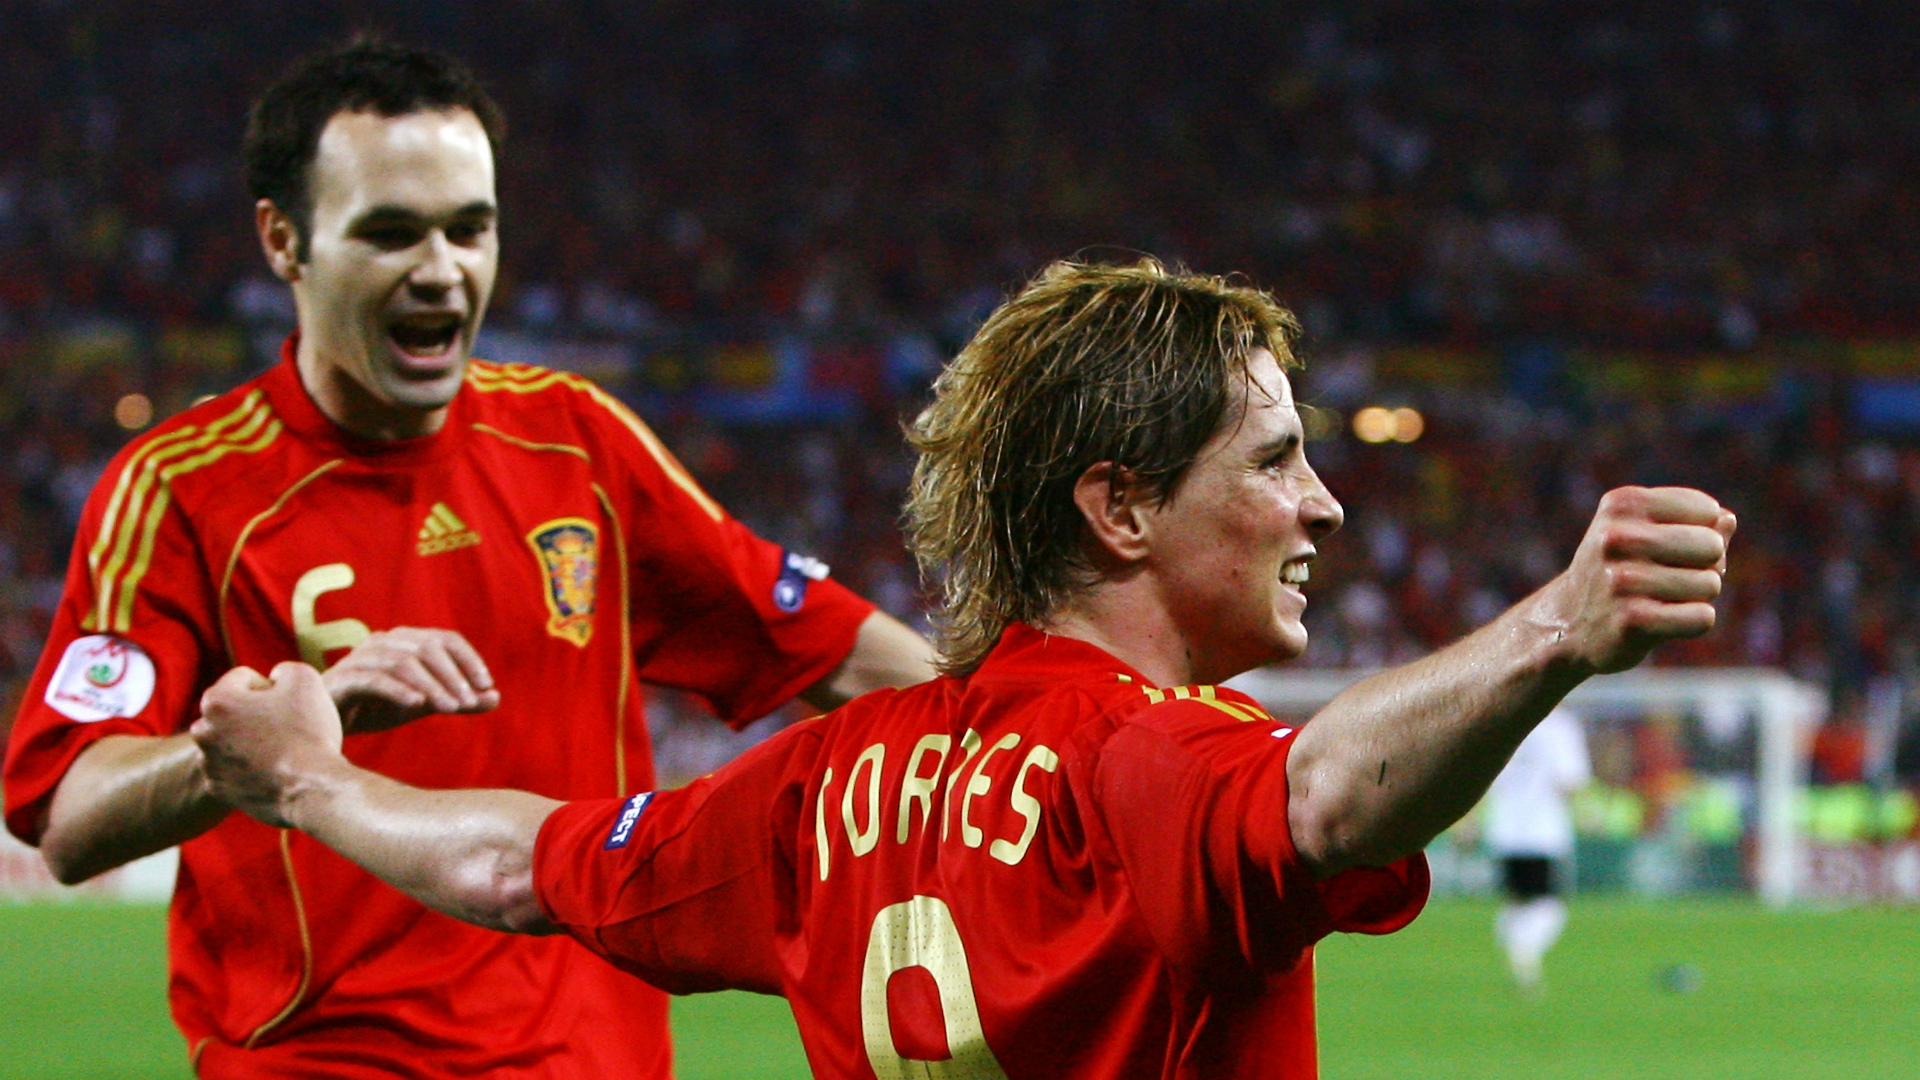 Torres looking forward to 'perfect finale' with Iniesta and Villa